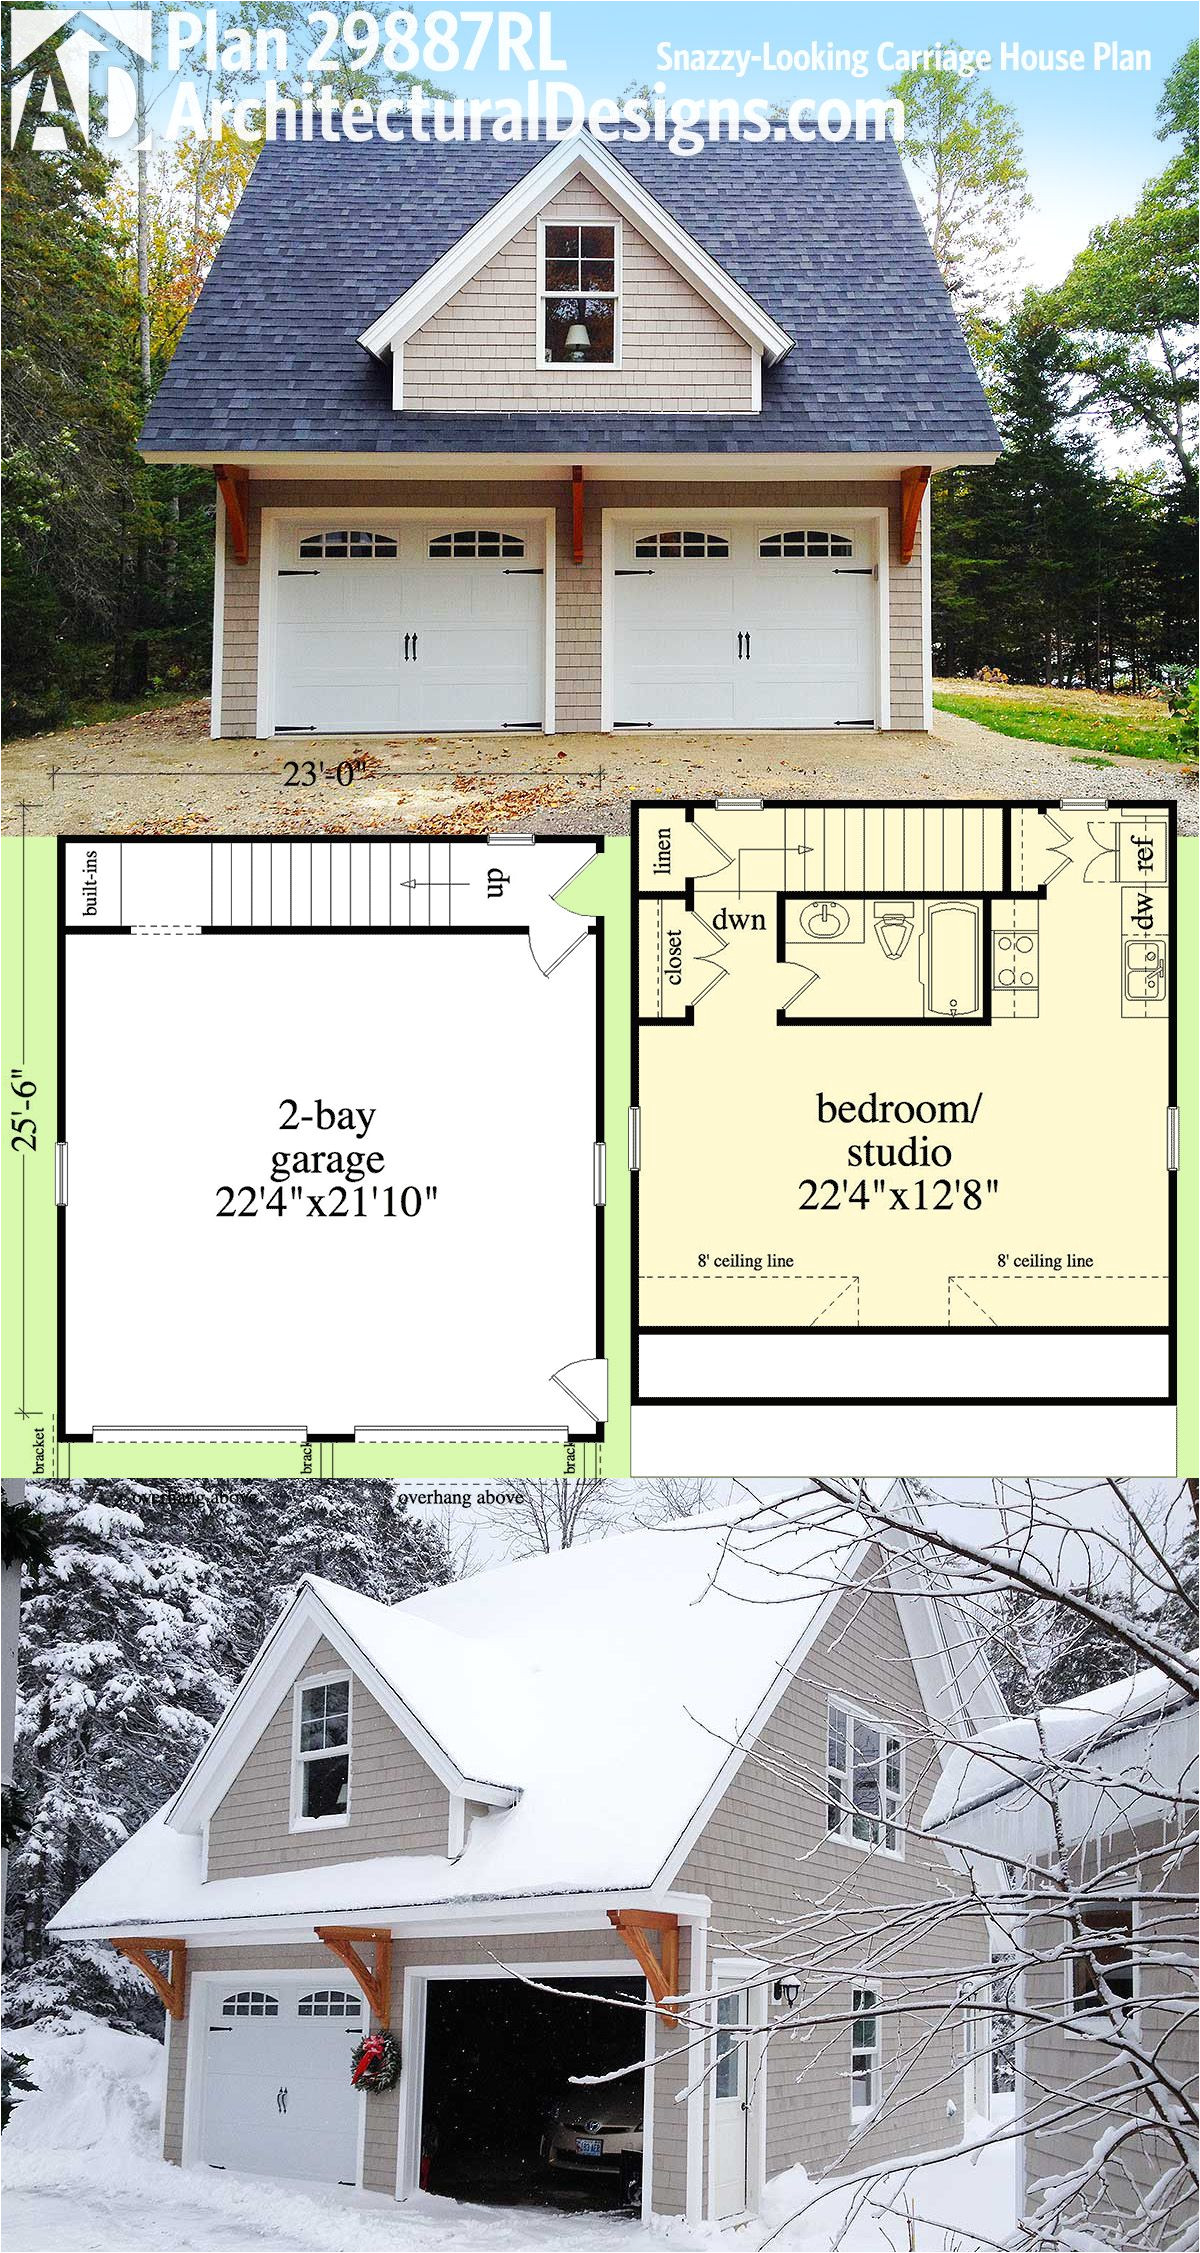 Carriage House Plans Cost to Build Plan 29887rl Snazzy Looking Carriage House Plan